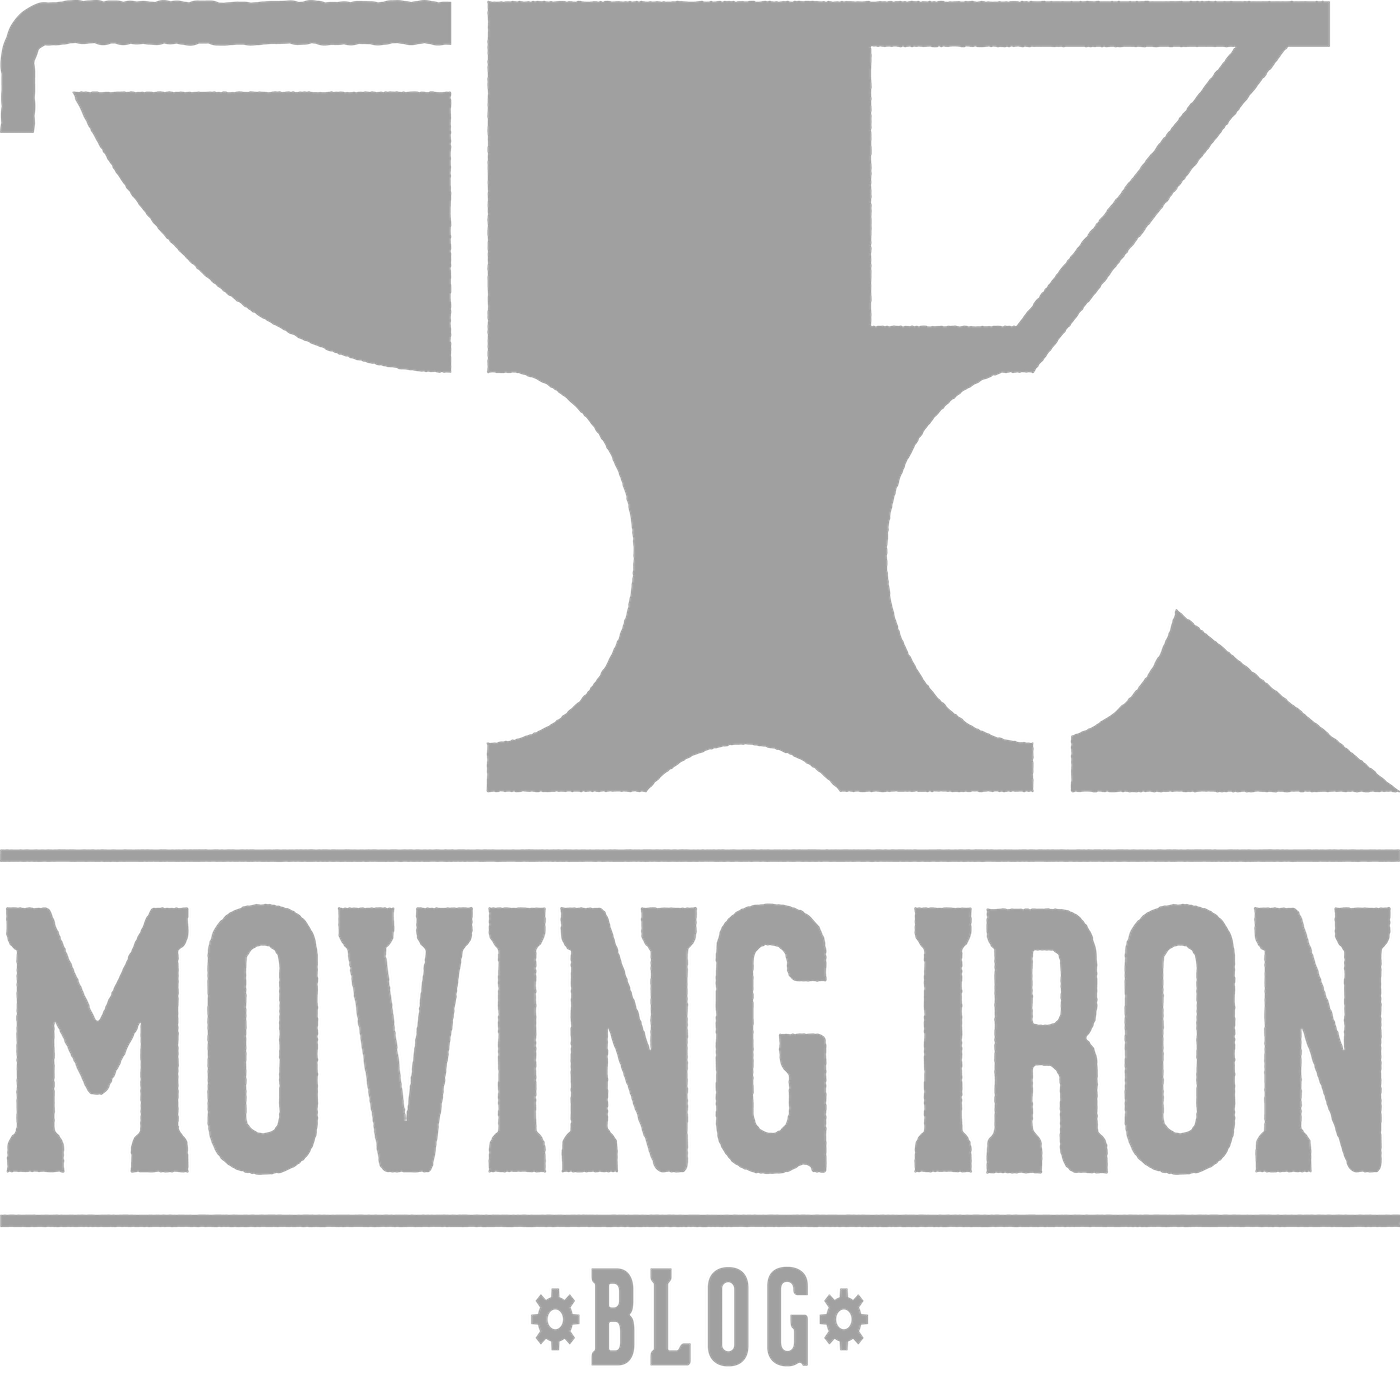 Moving Iron Blog Final